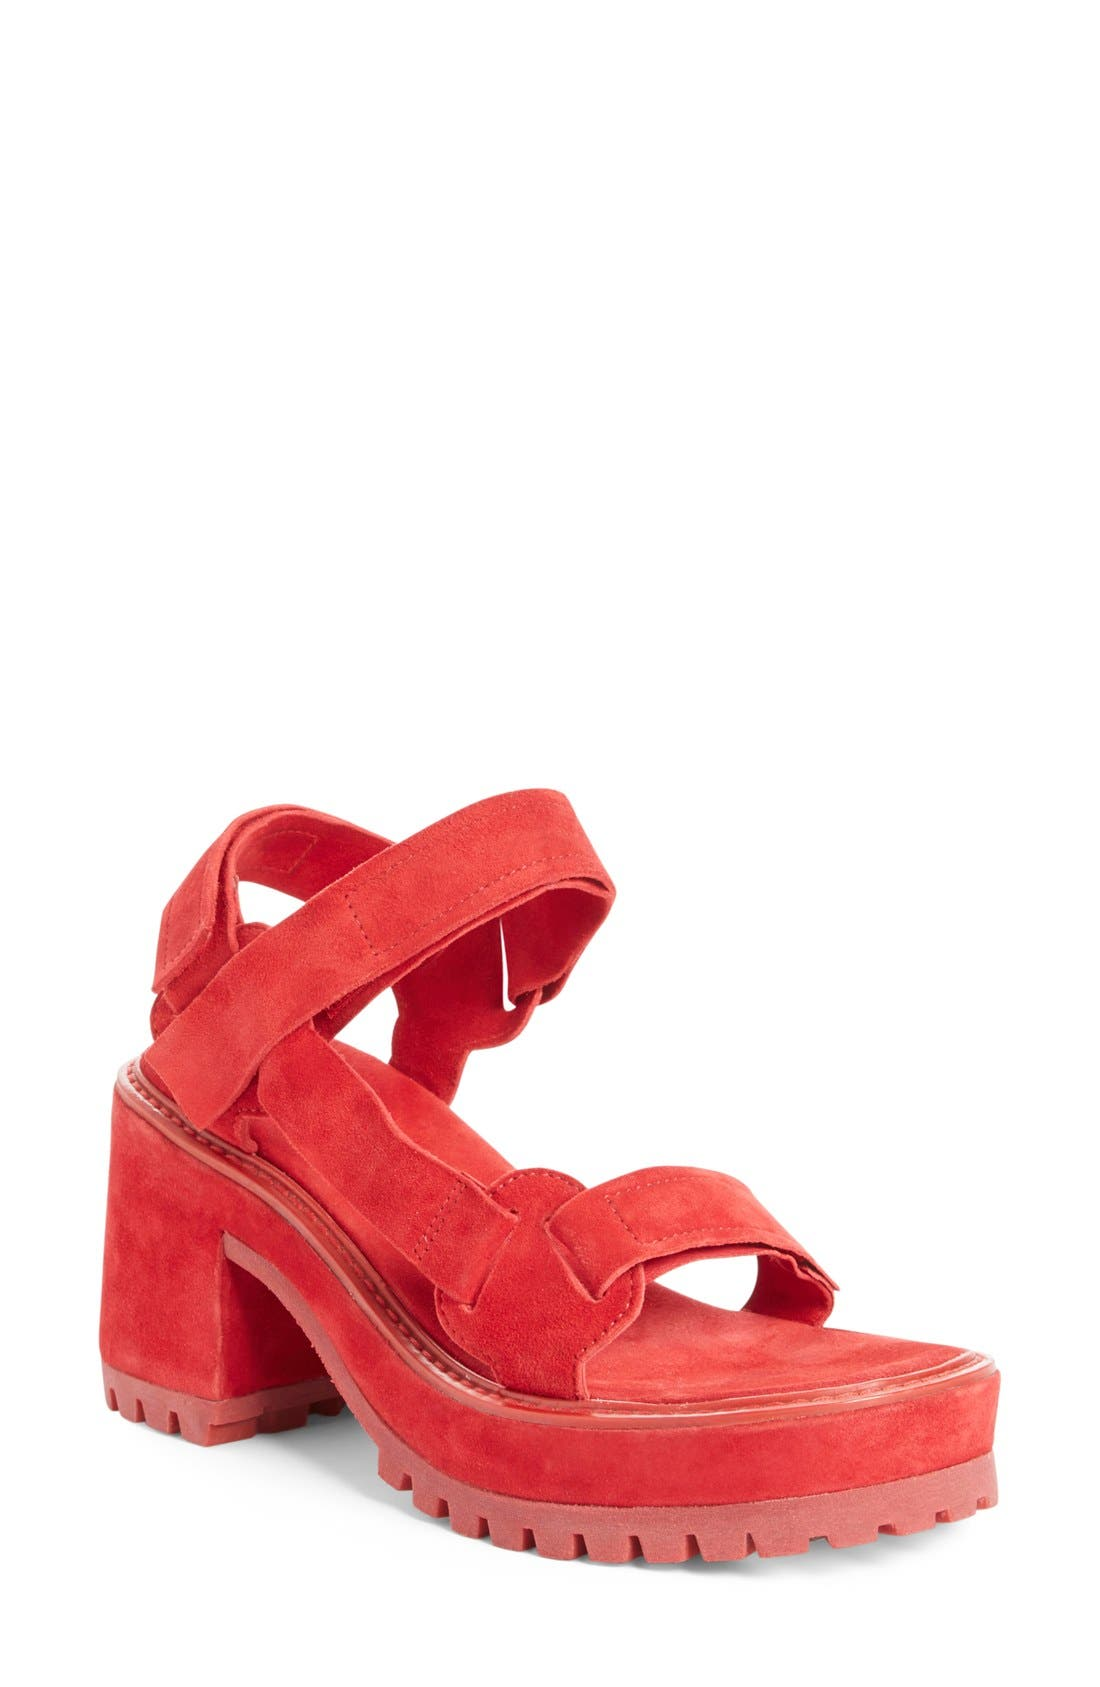 Alternate Image 1 Selected - Marques'Almeida Chunky Heel Sandal (Women)